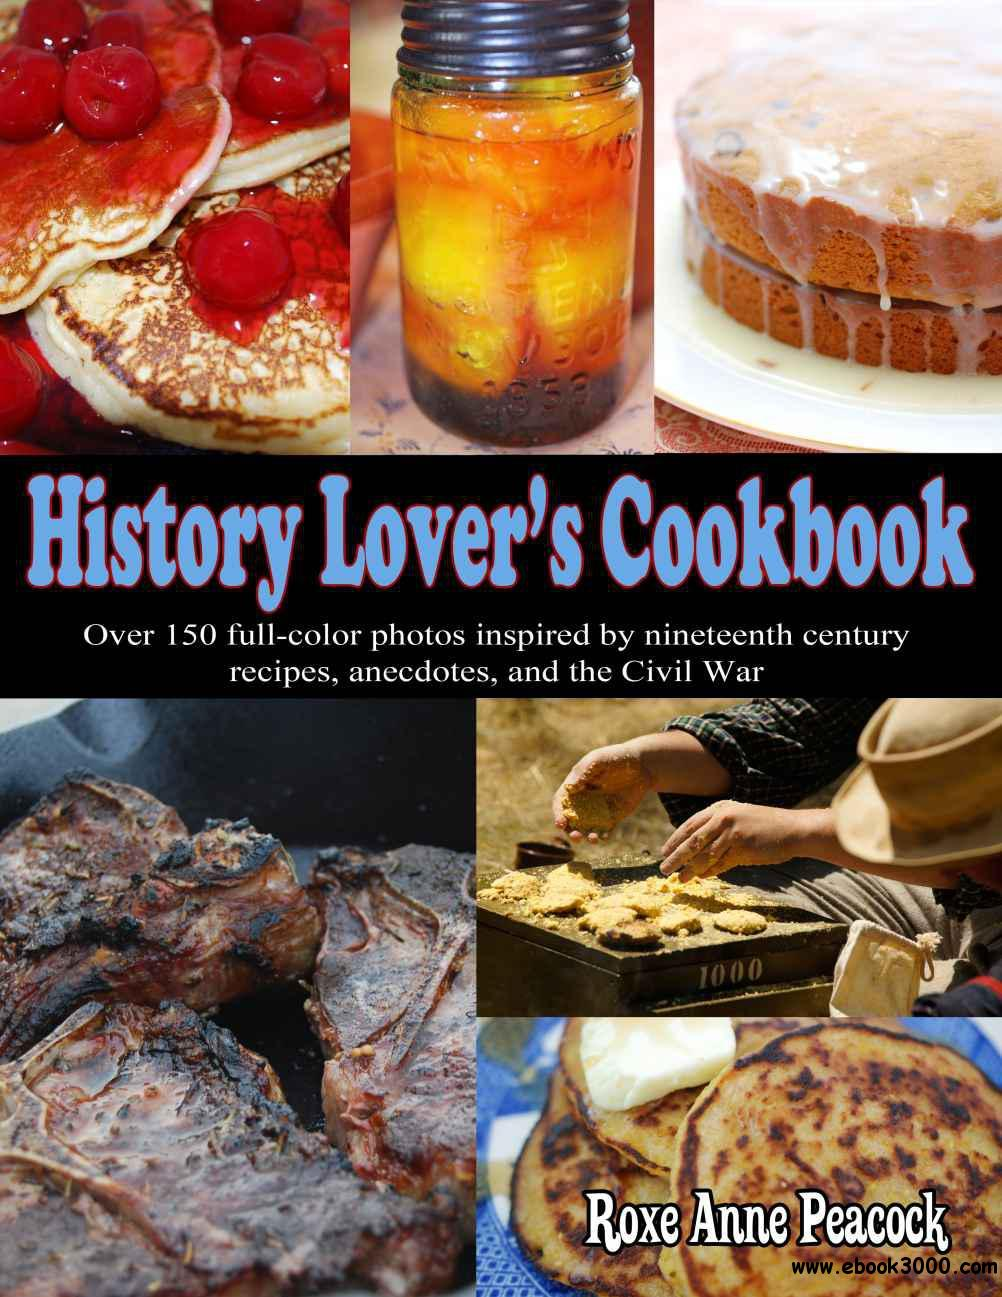 History Lover's Cookbook free download